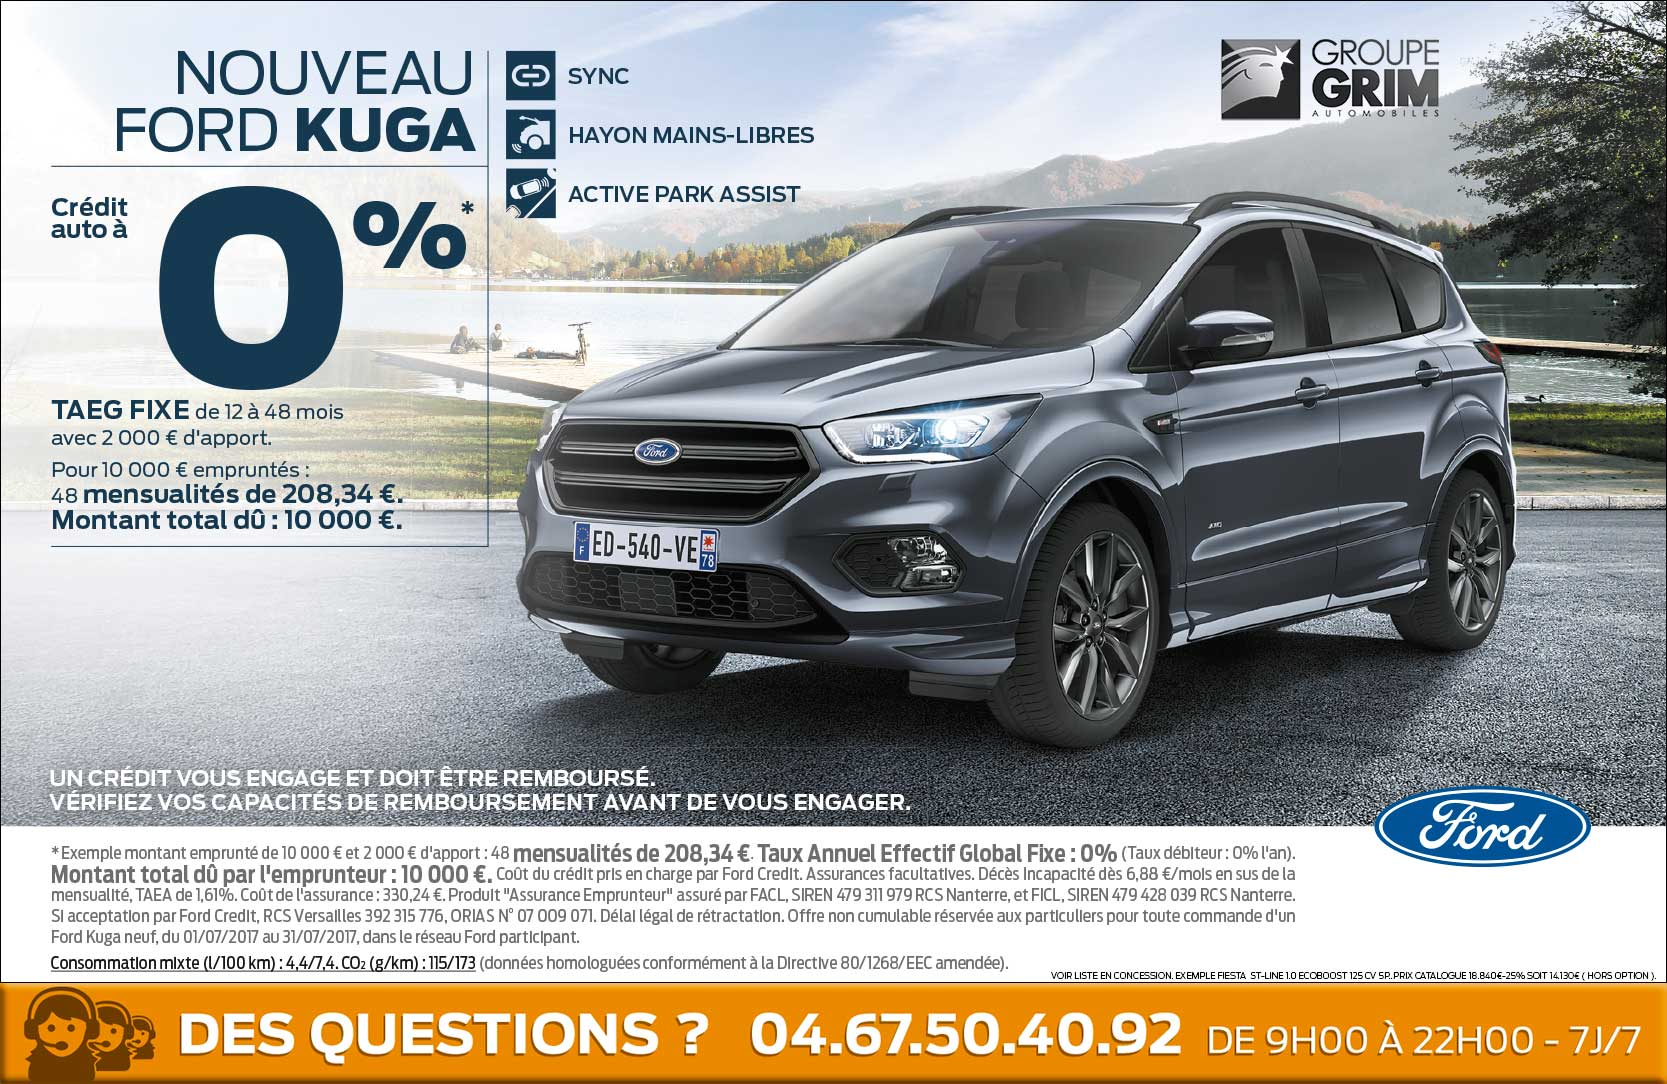 nouveau ford kuga credit auto a 0 ford grim auto savab saval fordstore. Black Bedroom Furniture Sets. Home Design Ideas